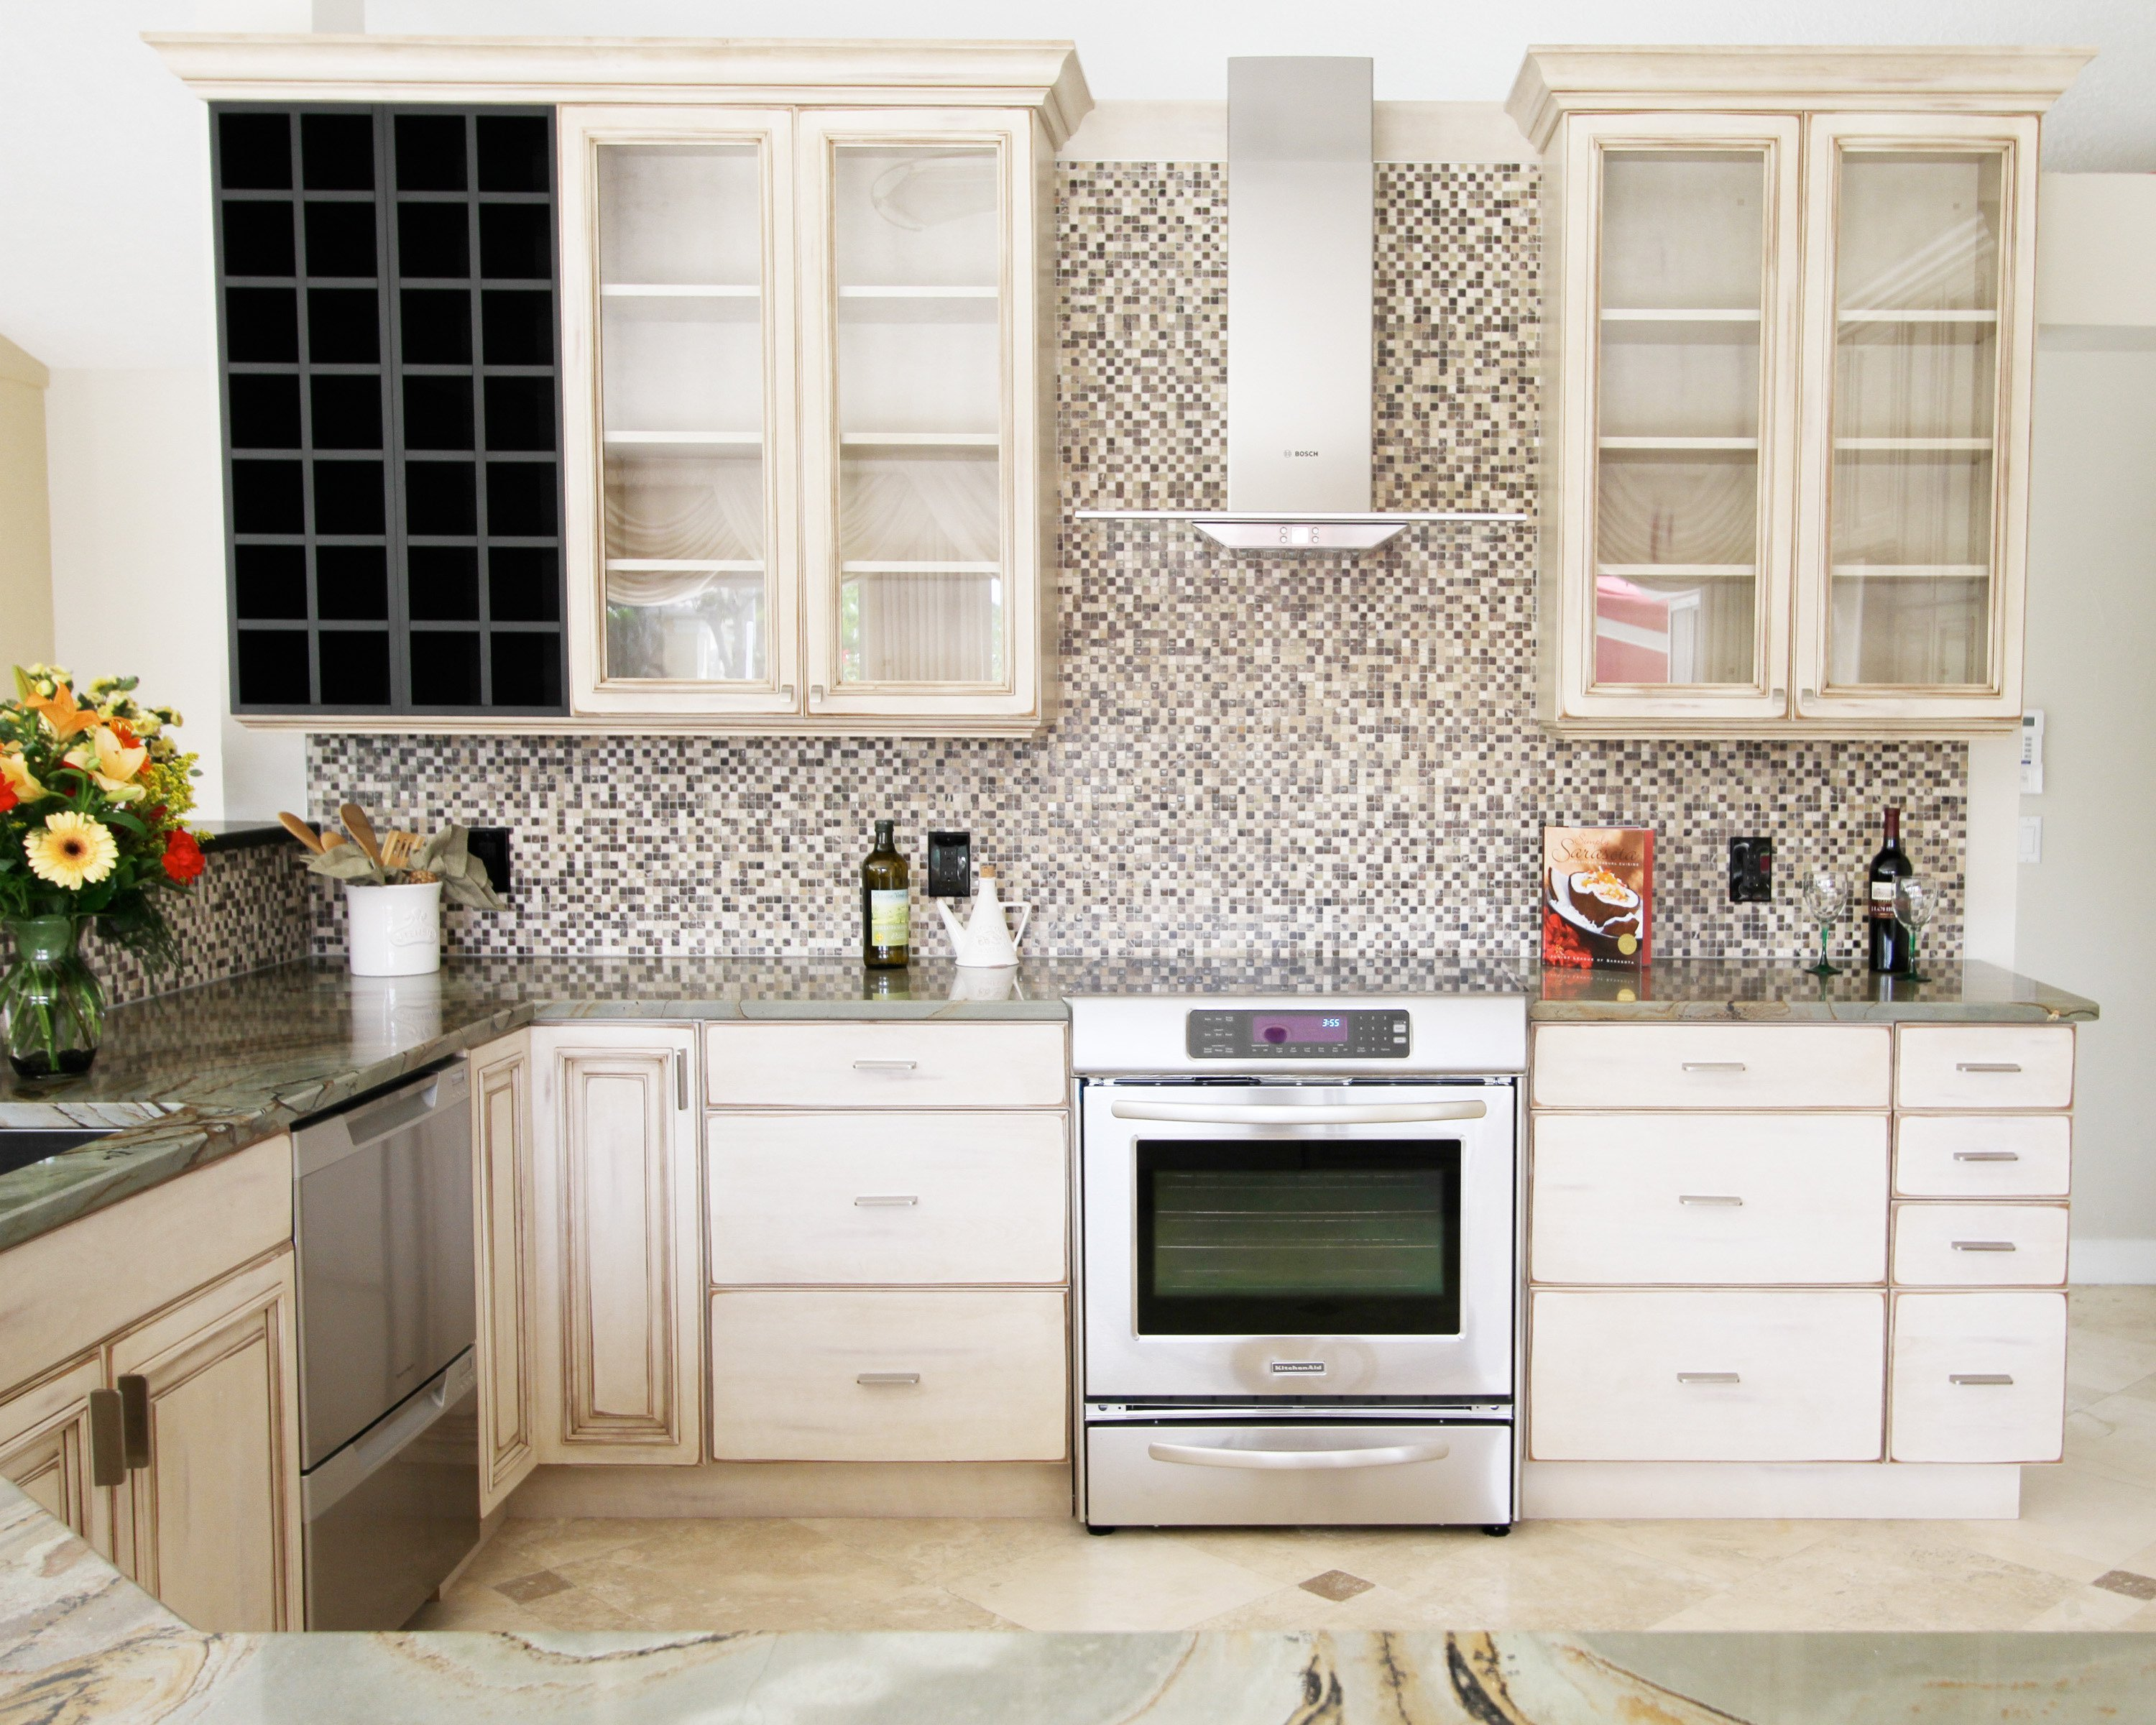 Kitchen remodel franklin tn carriage house custom homes amp interiors